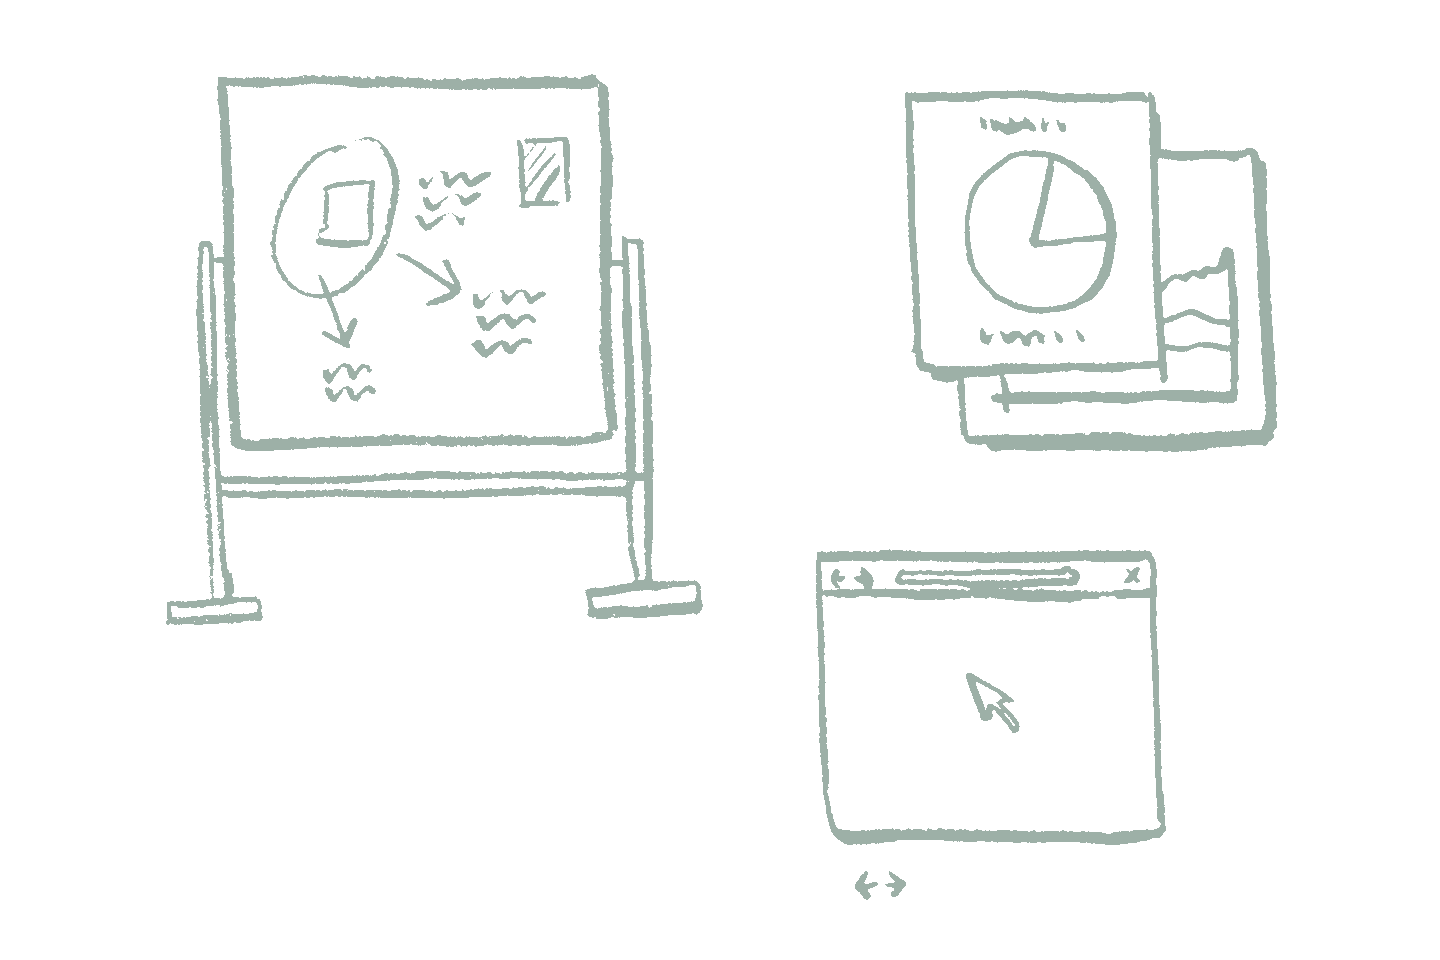 Drawing of whiteboard, web browser, and app windows